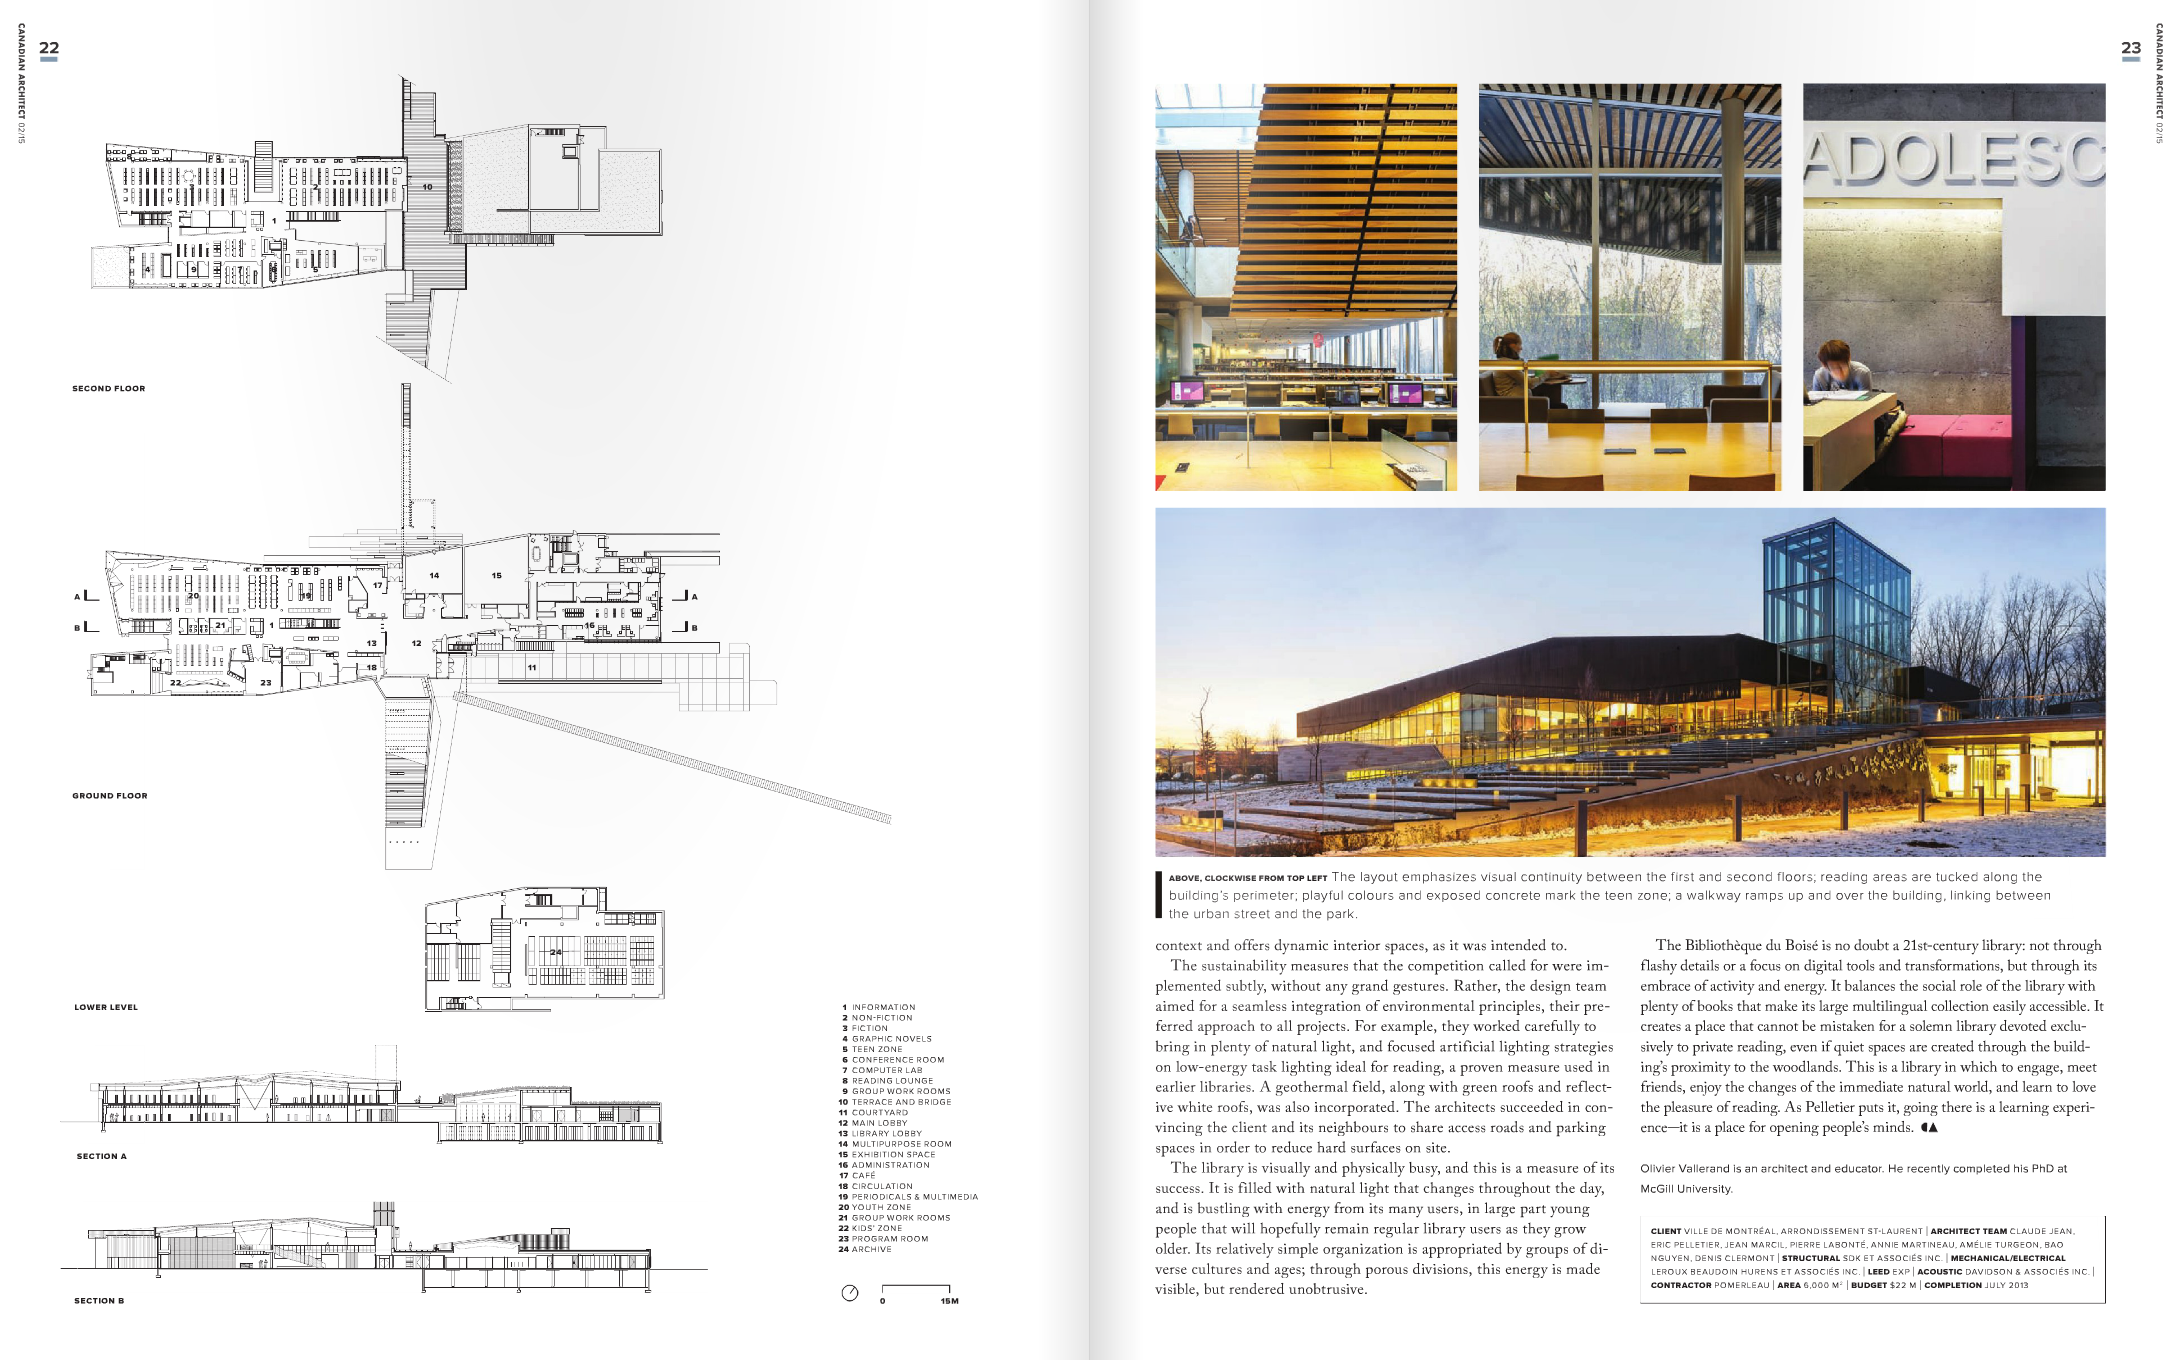 Canadian Architect - March 2015 - Inside 3